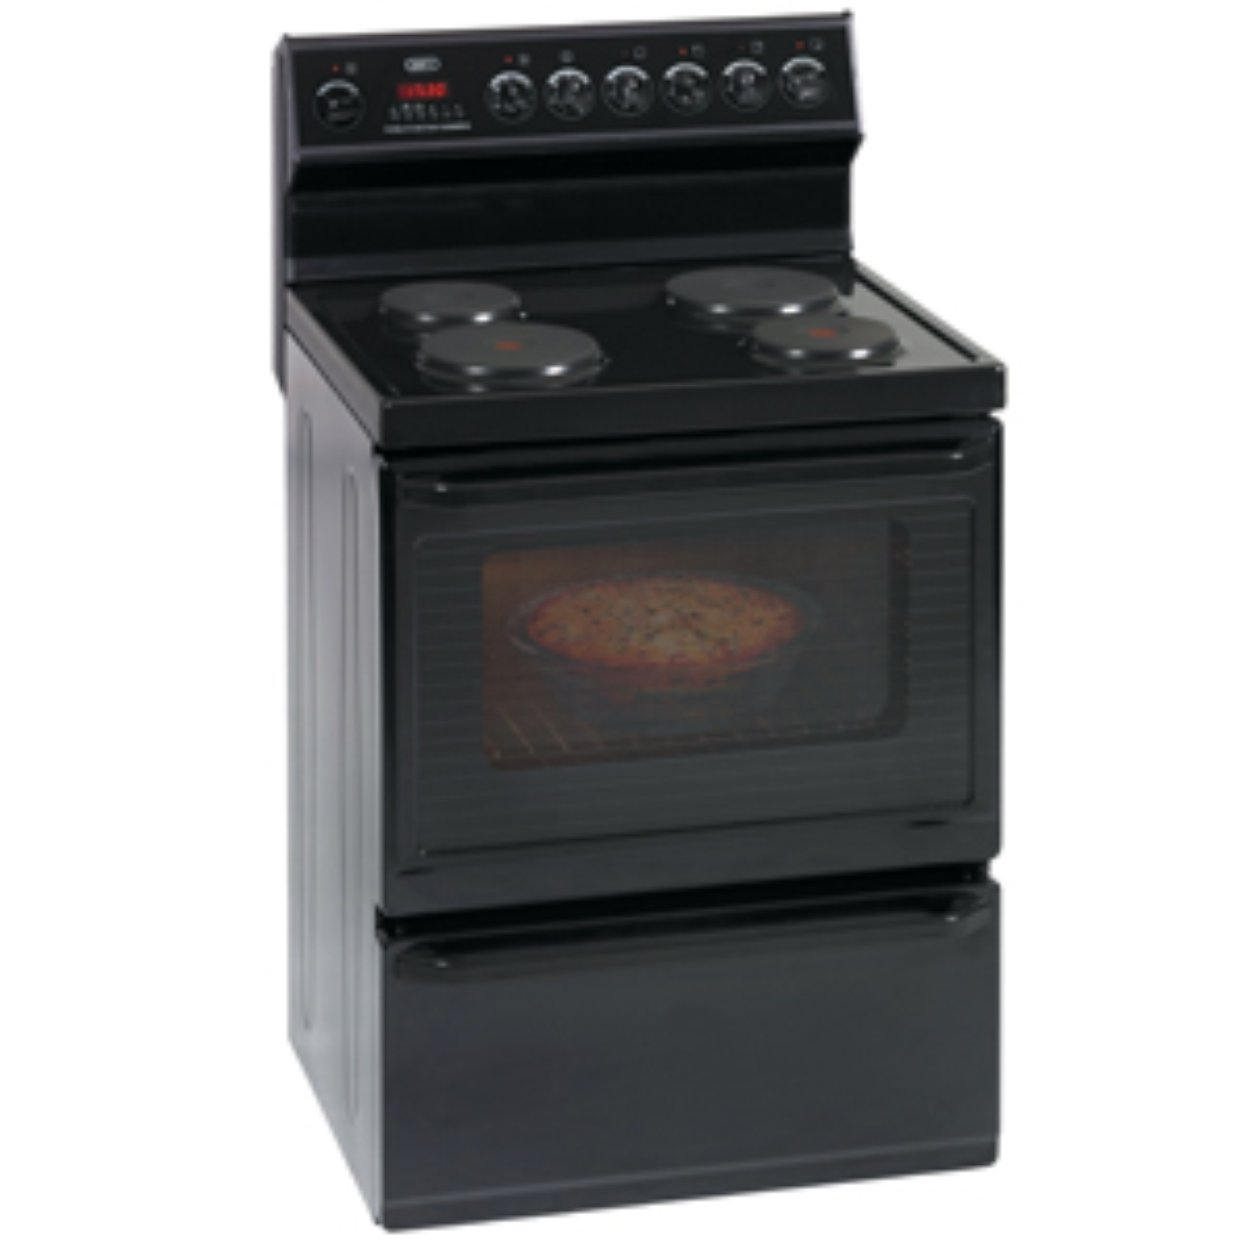 DEFy 731 Electric Multifunction Stove DSS445